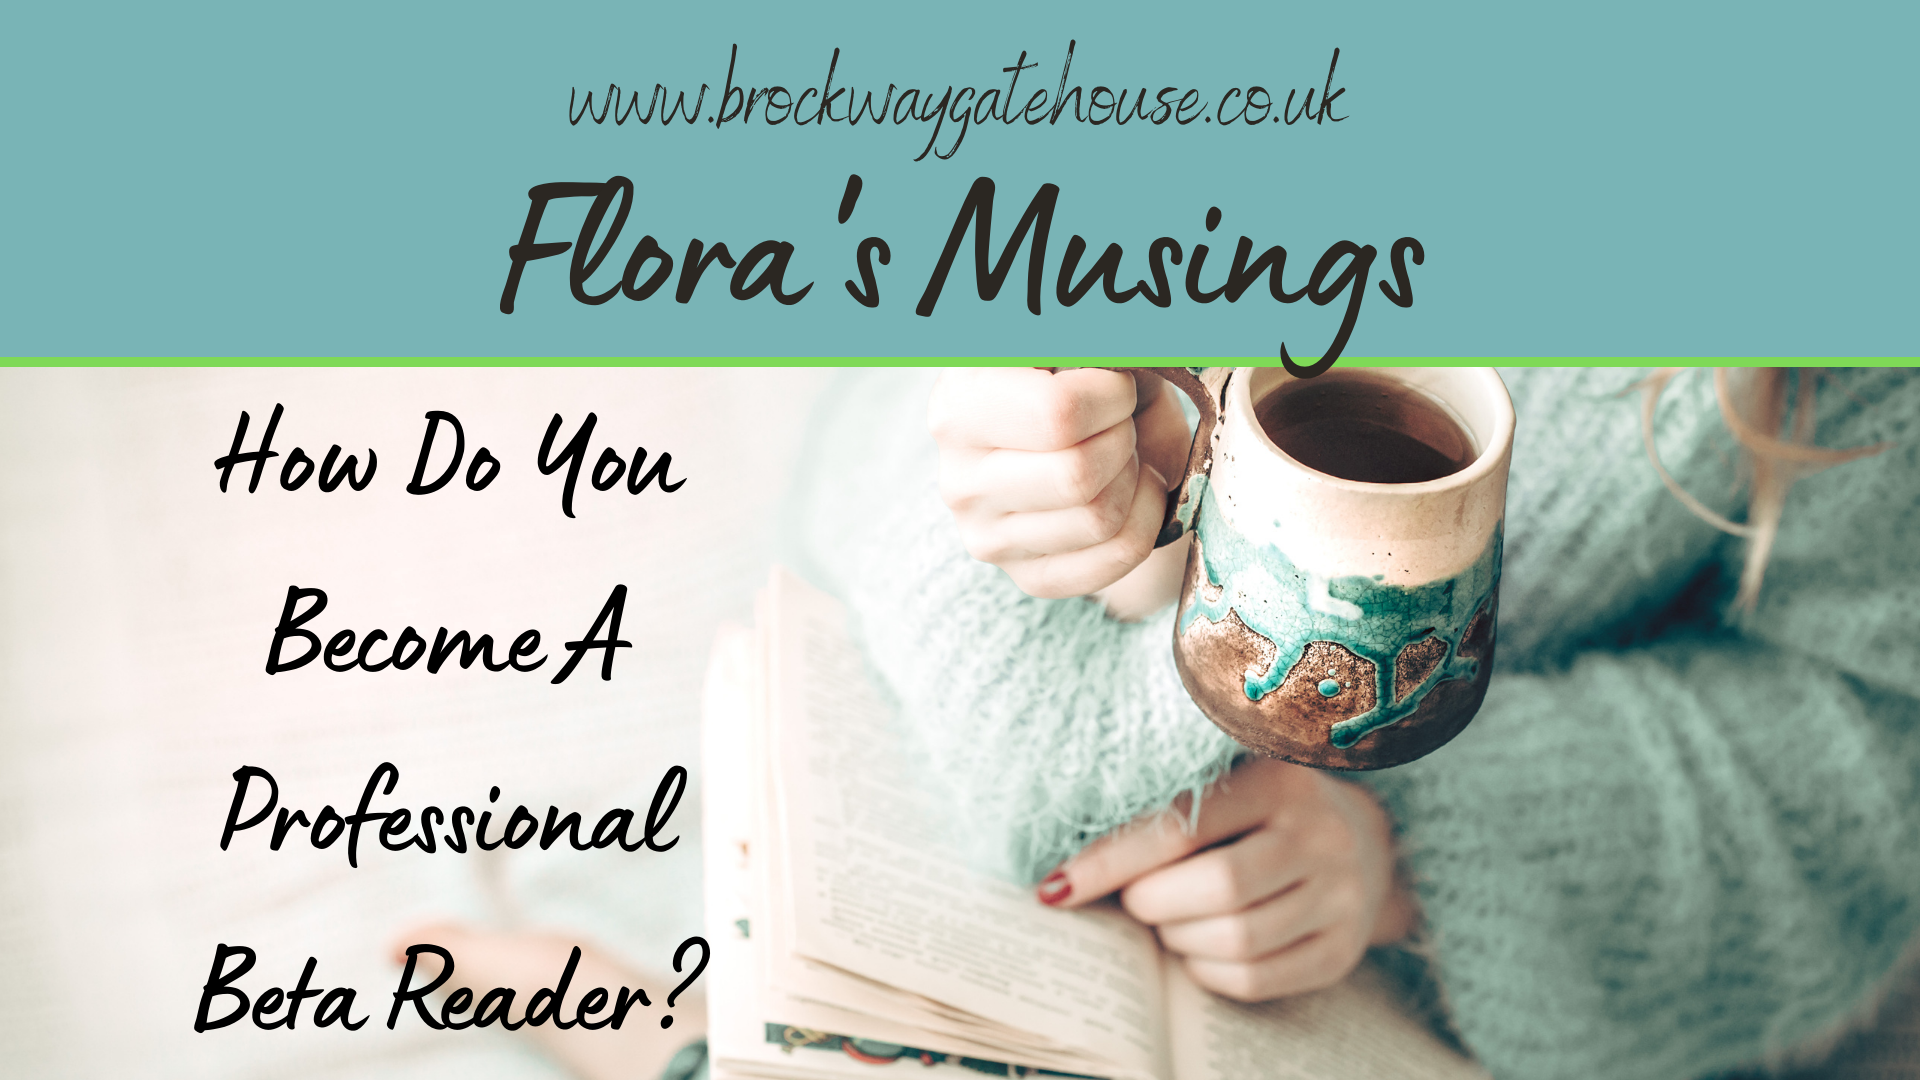 Flora's Musings on Brockway Gatehouse - How do you become a professional beta reader?